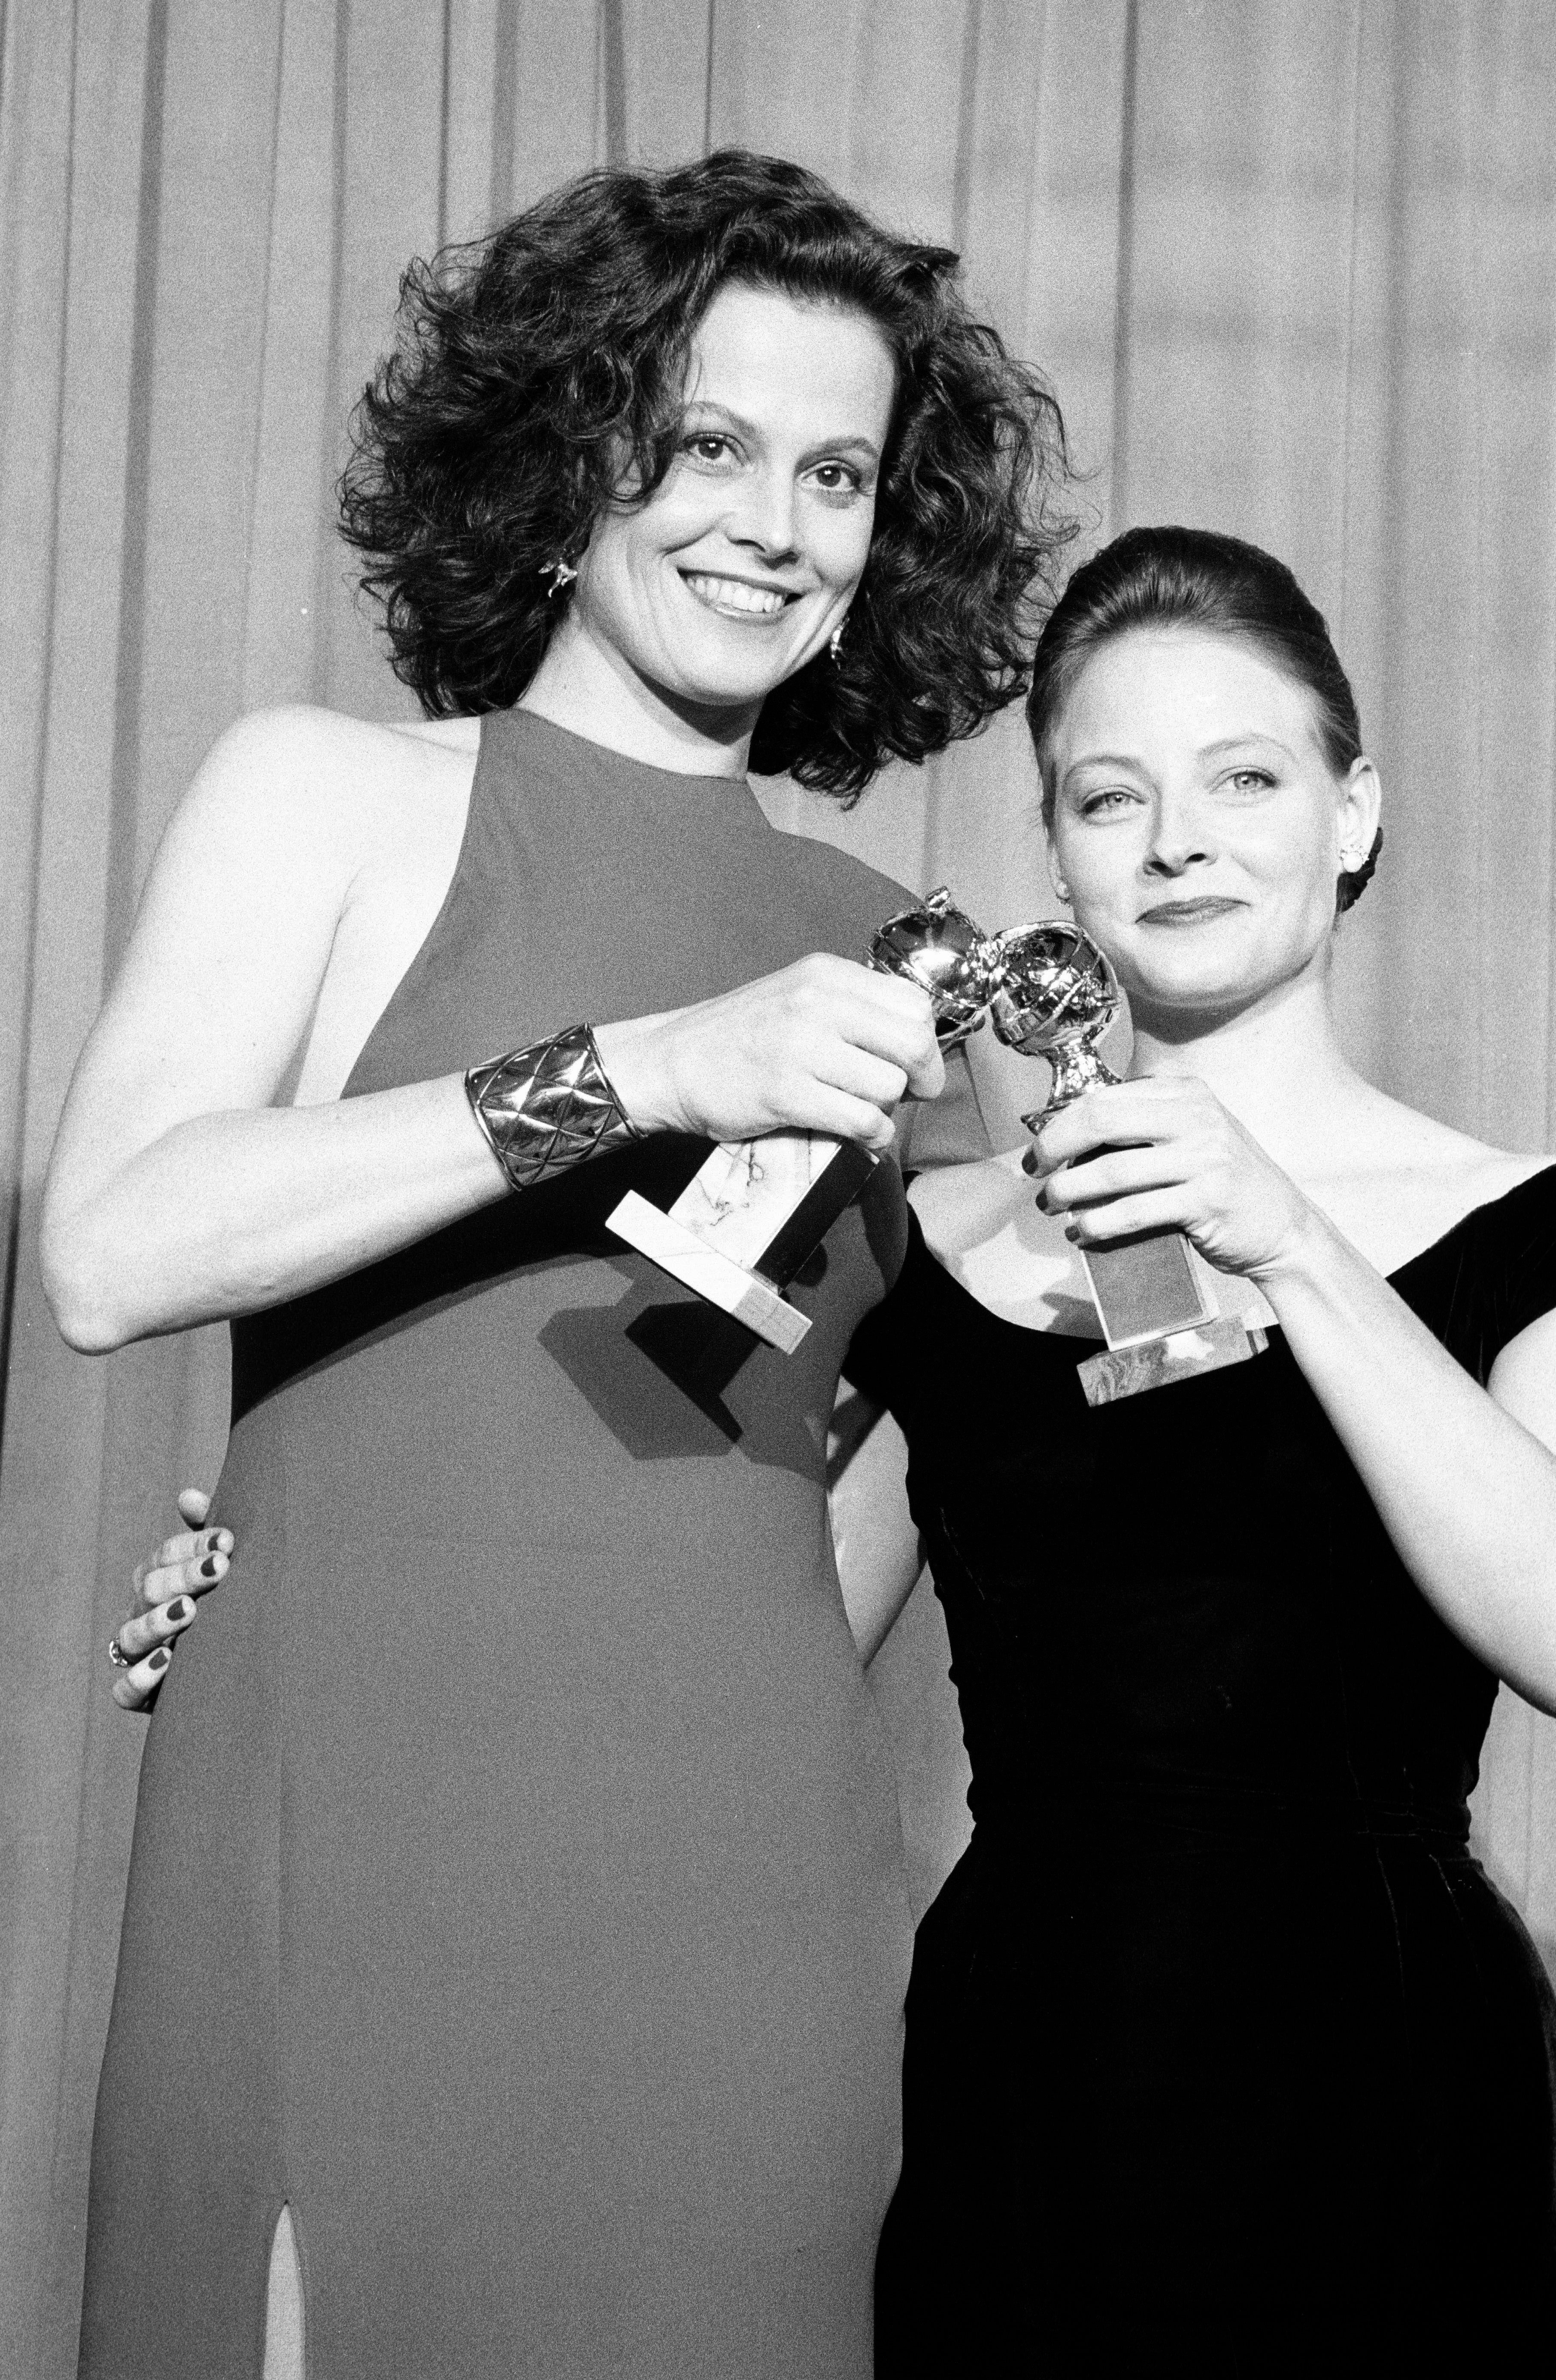 Sigourney Weaver and Jodie Foster, Golden Globe winners, 1989